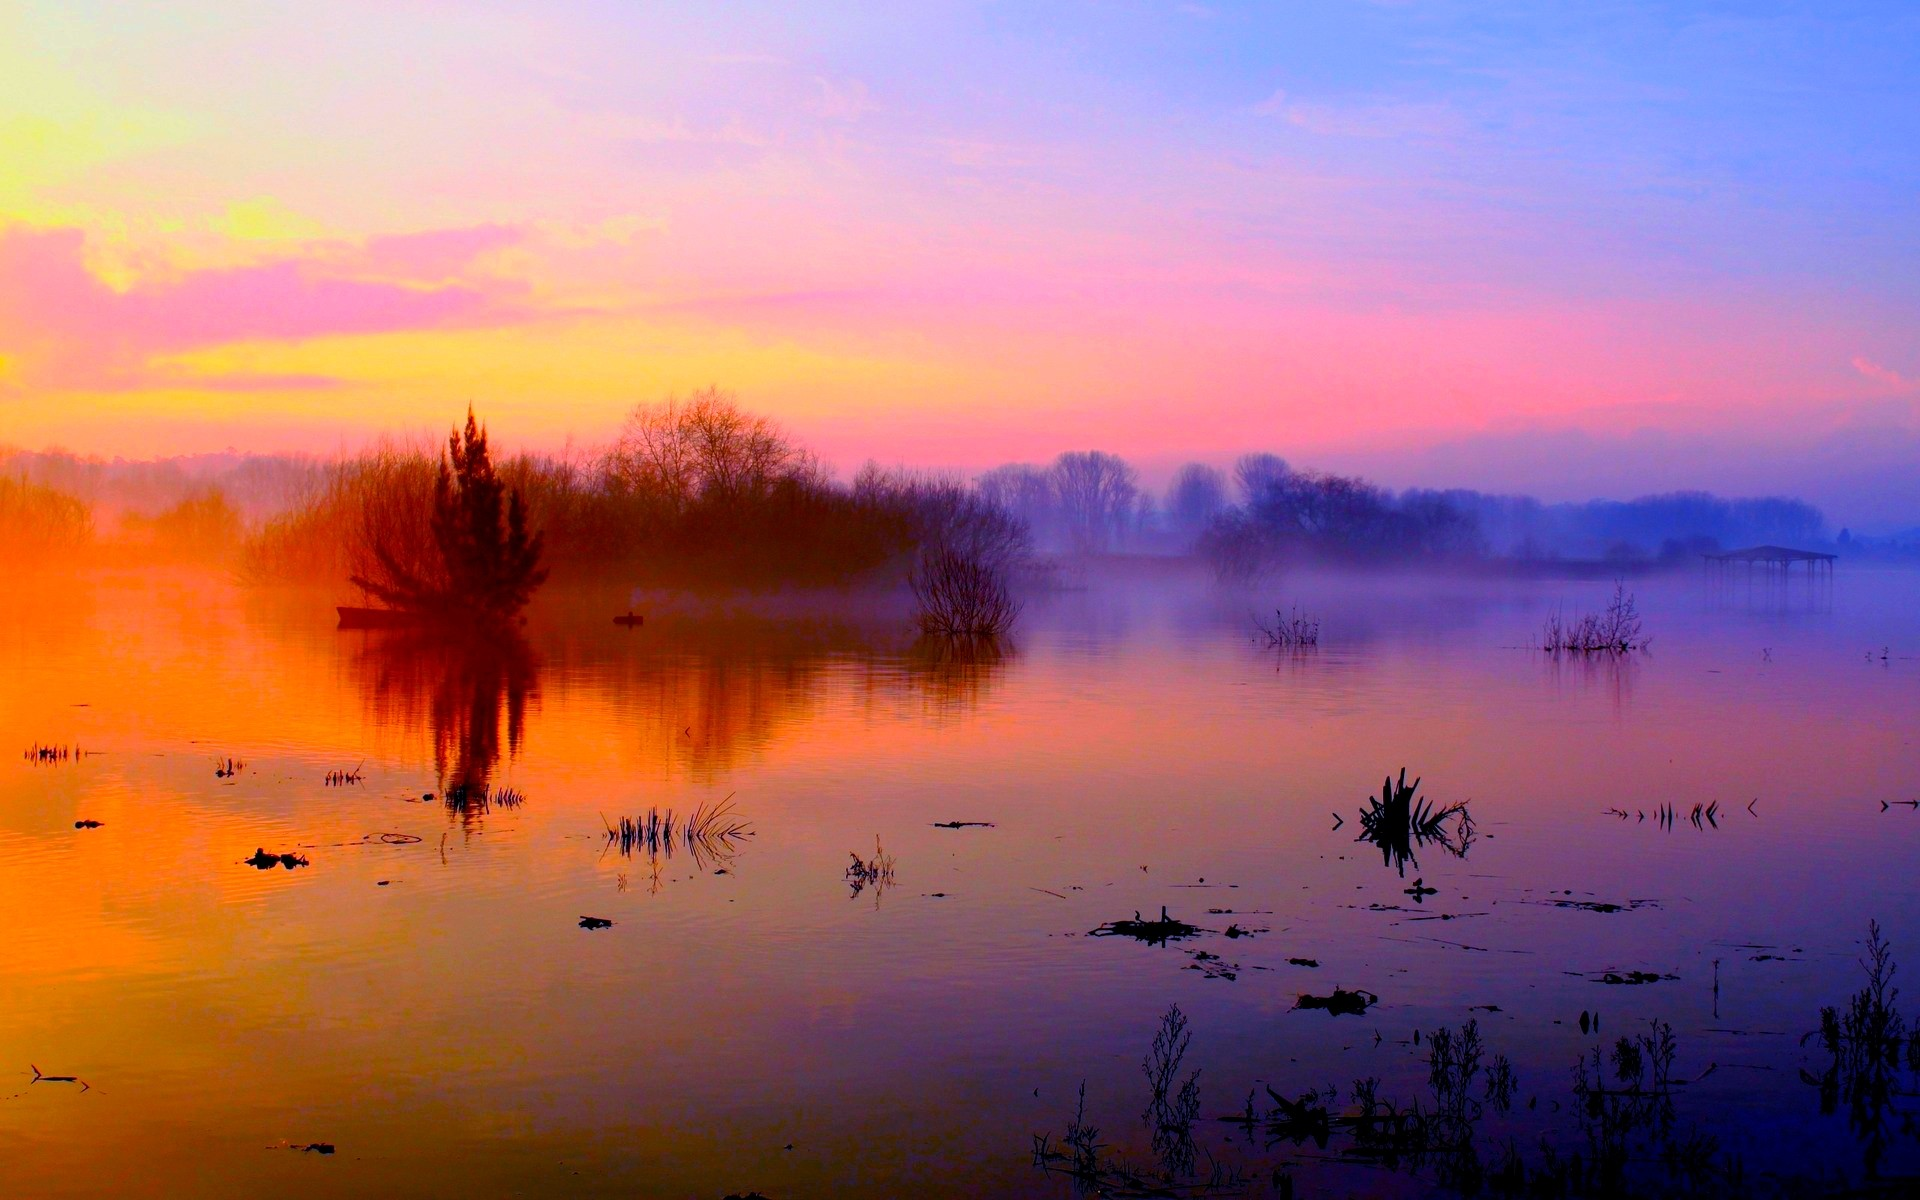 River Sky Sunrise Nature Fog Morning Misty Water Trees Scenery ...